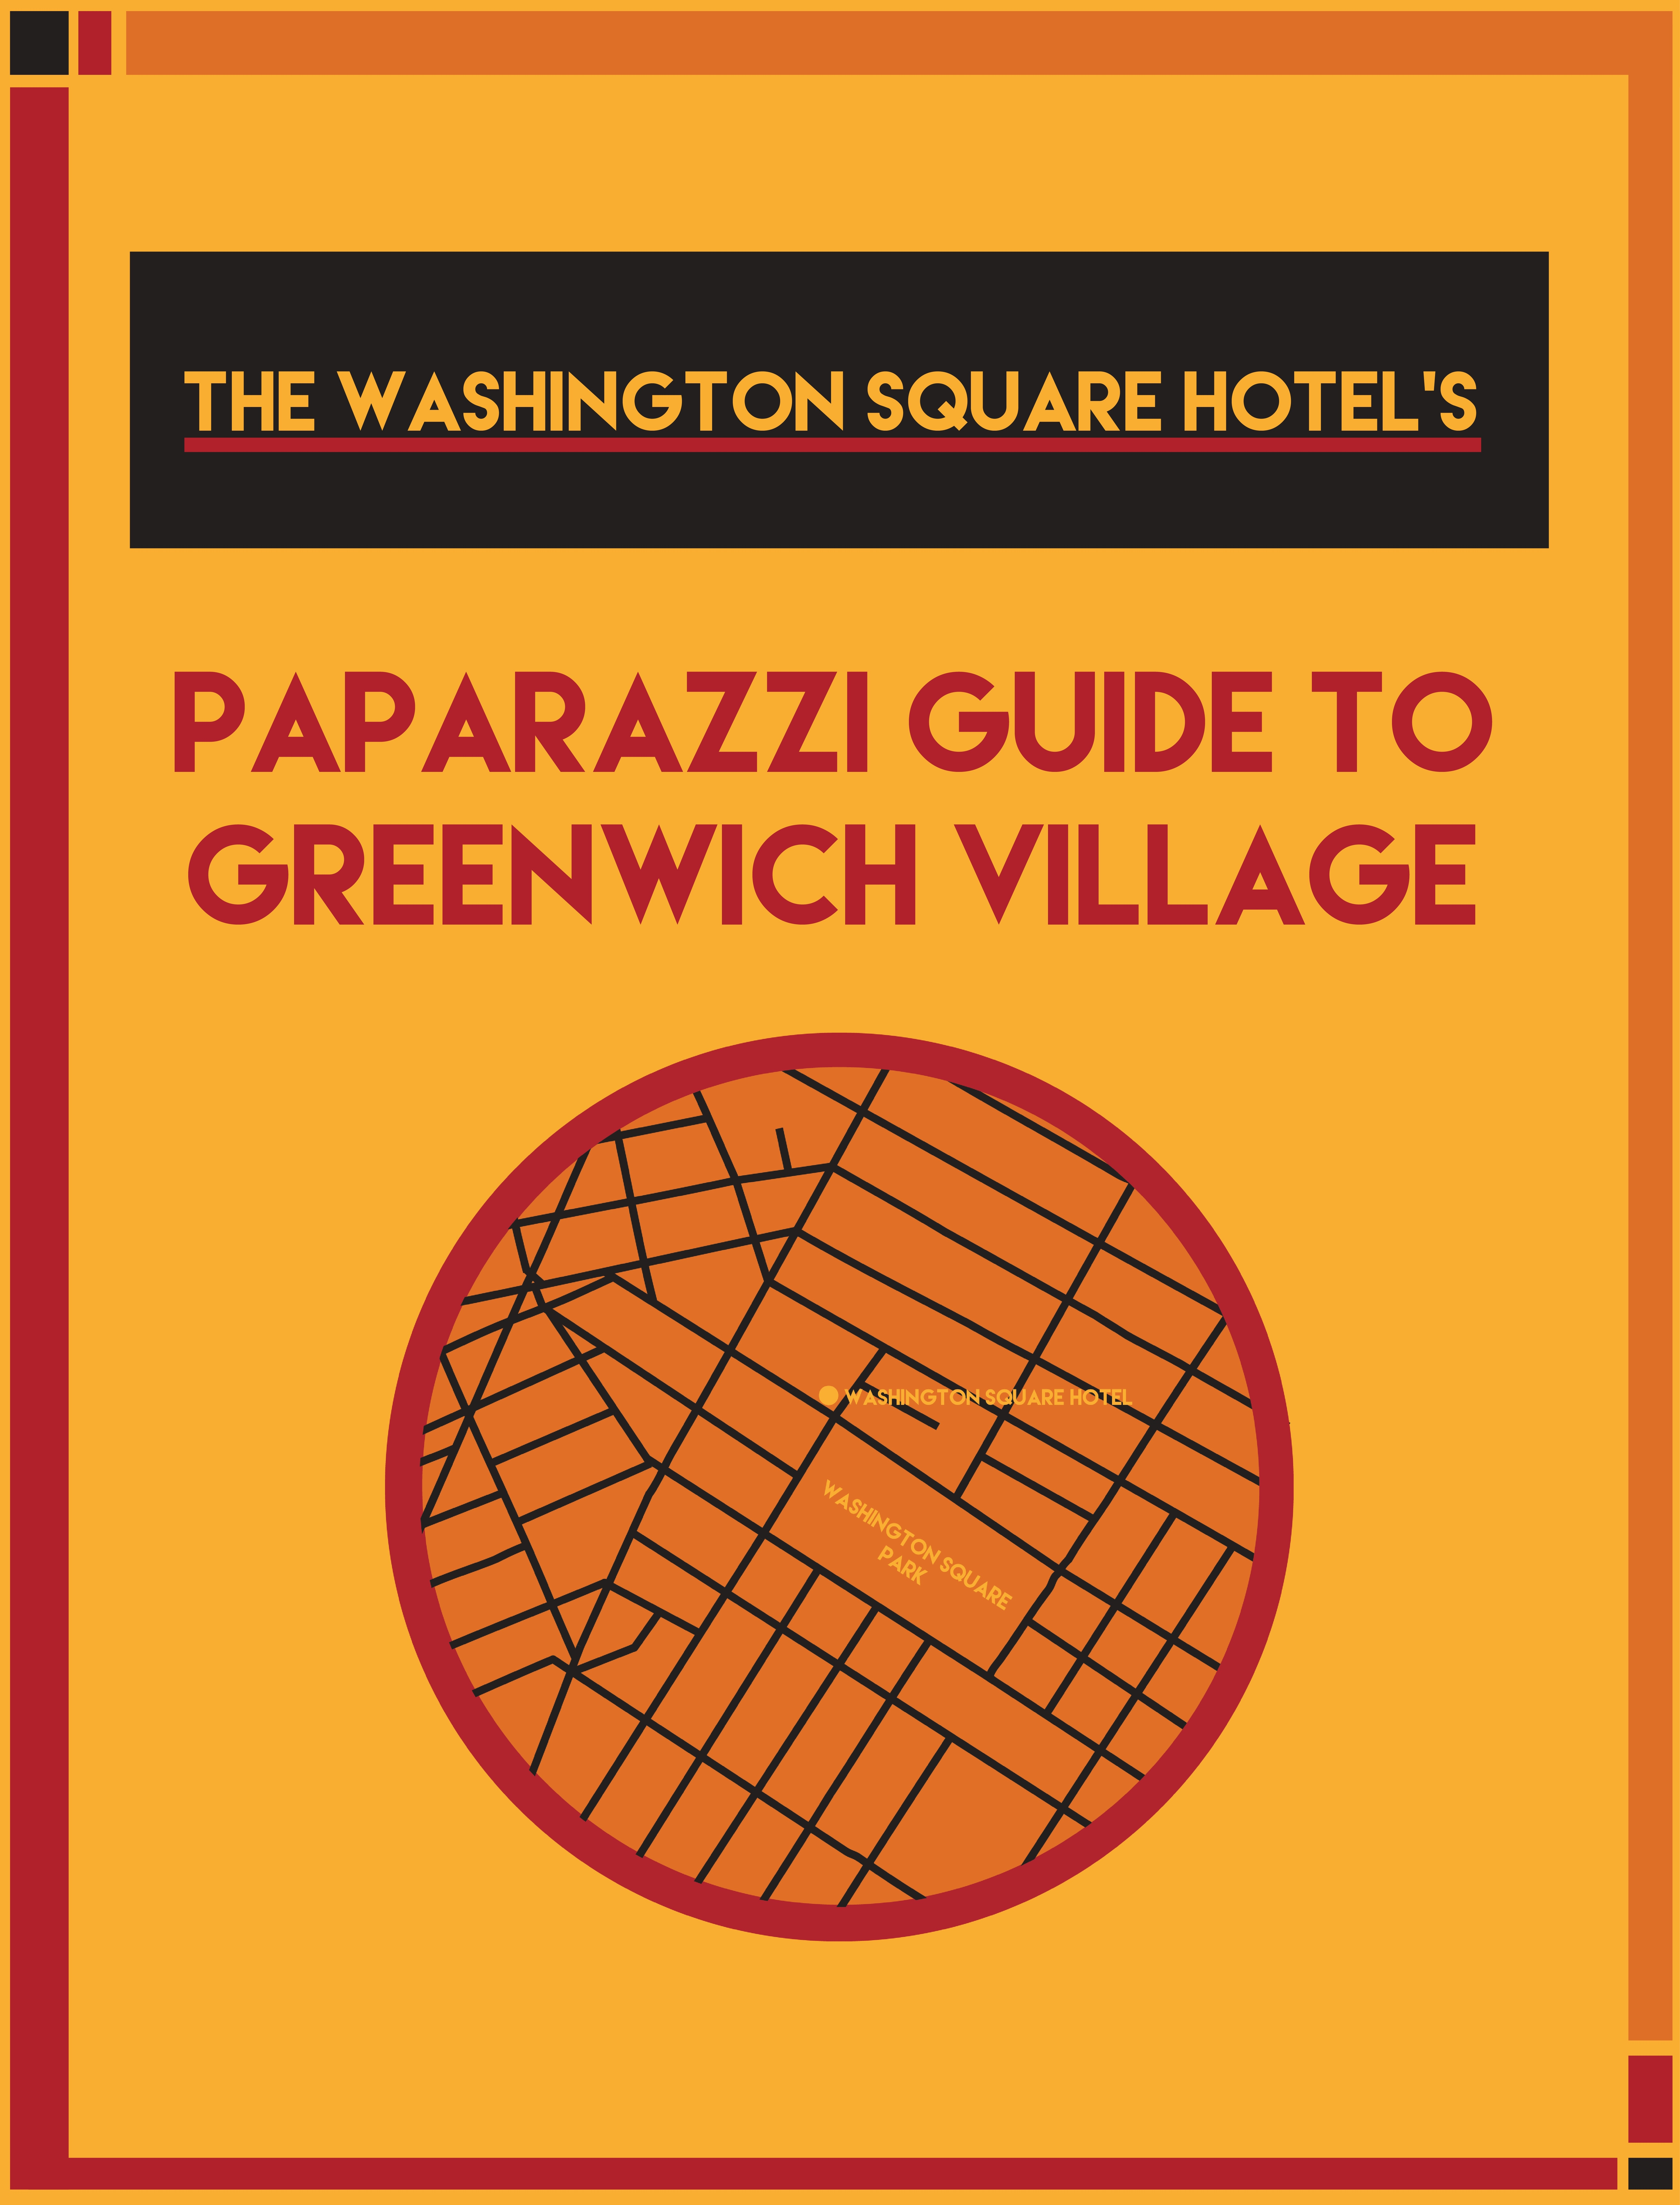 Paparazzi_Guide_Cover_NEW - jpeg.jpg